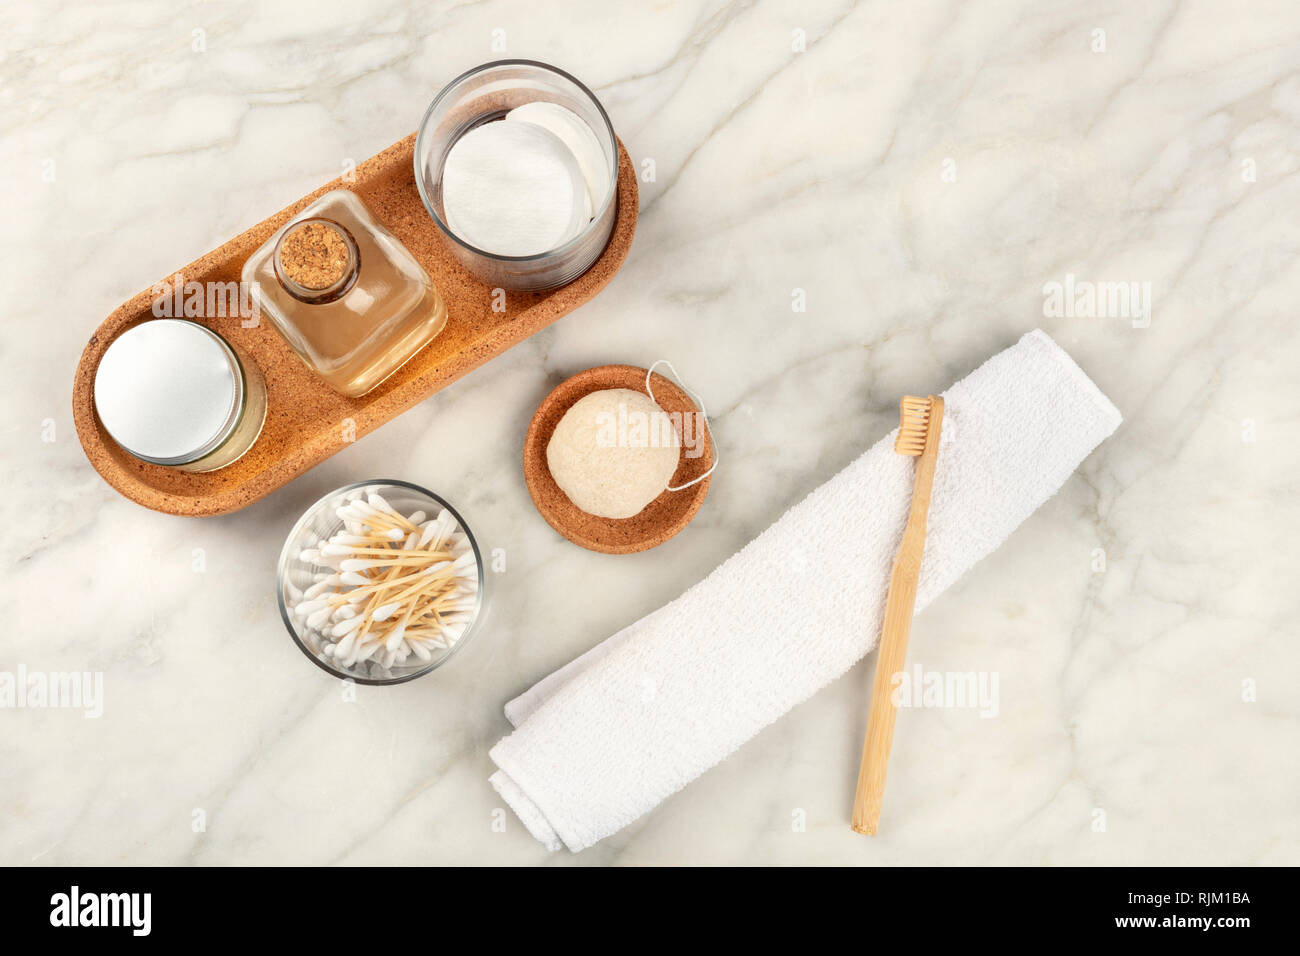 Sustainable toiletries. Homemade lotions, cotton pads, bamboo toothbrush, natural Konjac sponge, and biodegradable bamboo cotton swabs - Stock Image